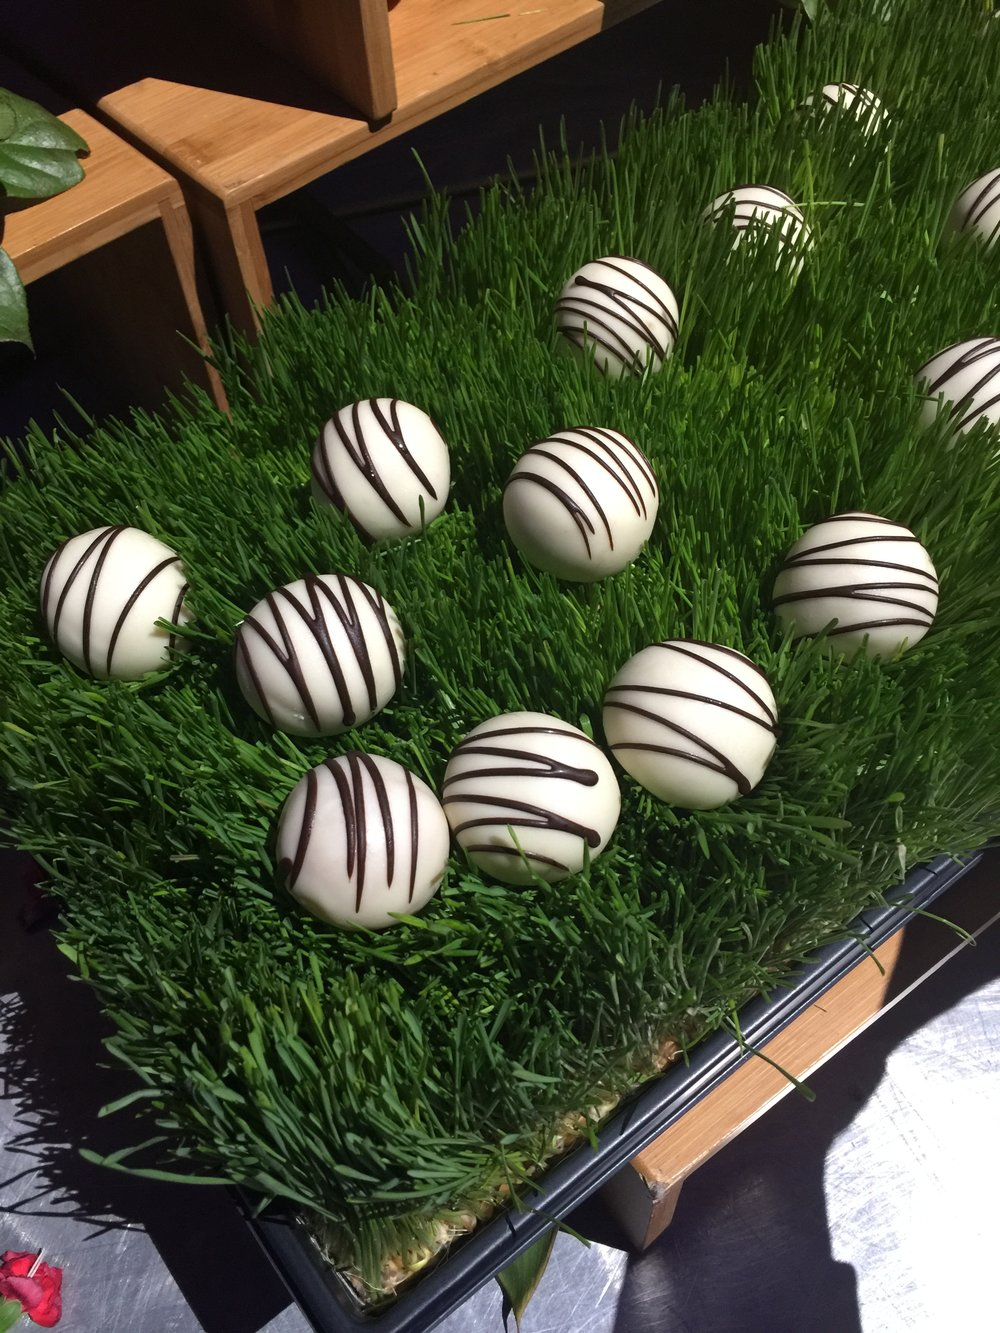 These cake pops were so creatively displayed in grasses #partyfood #cakepops #entertaining